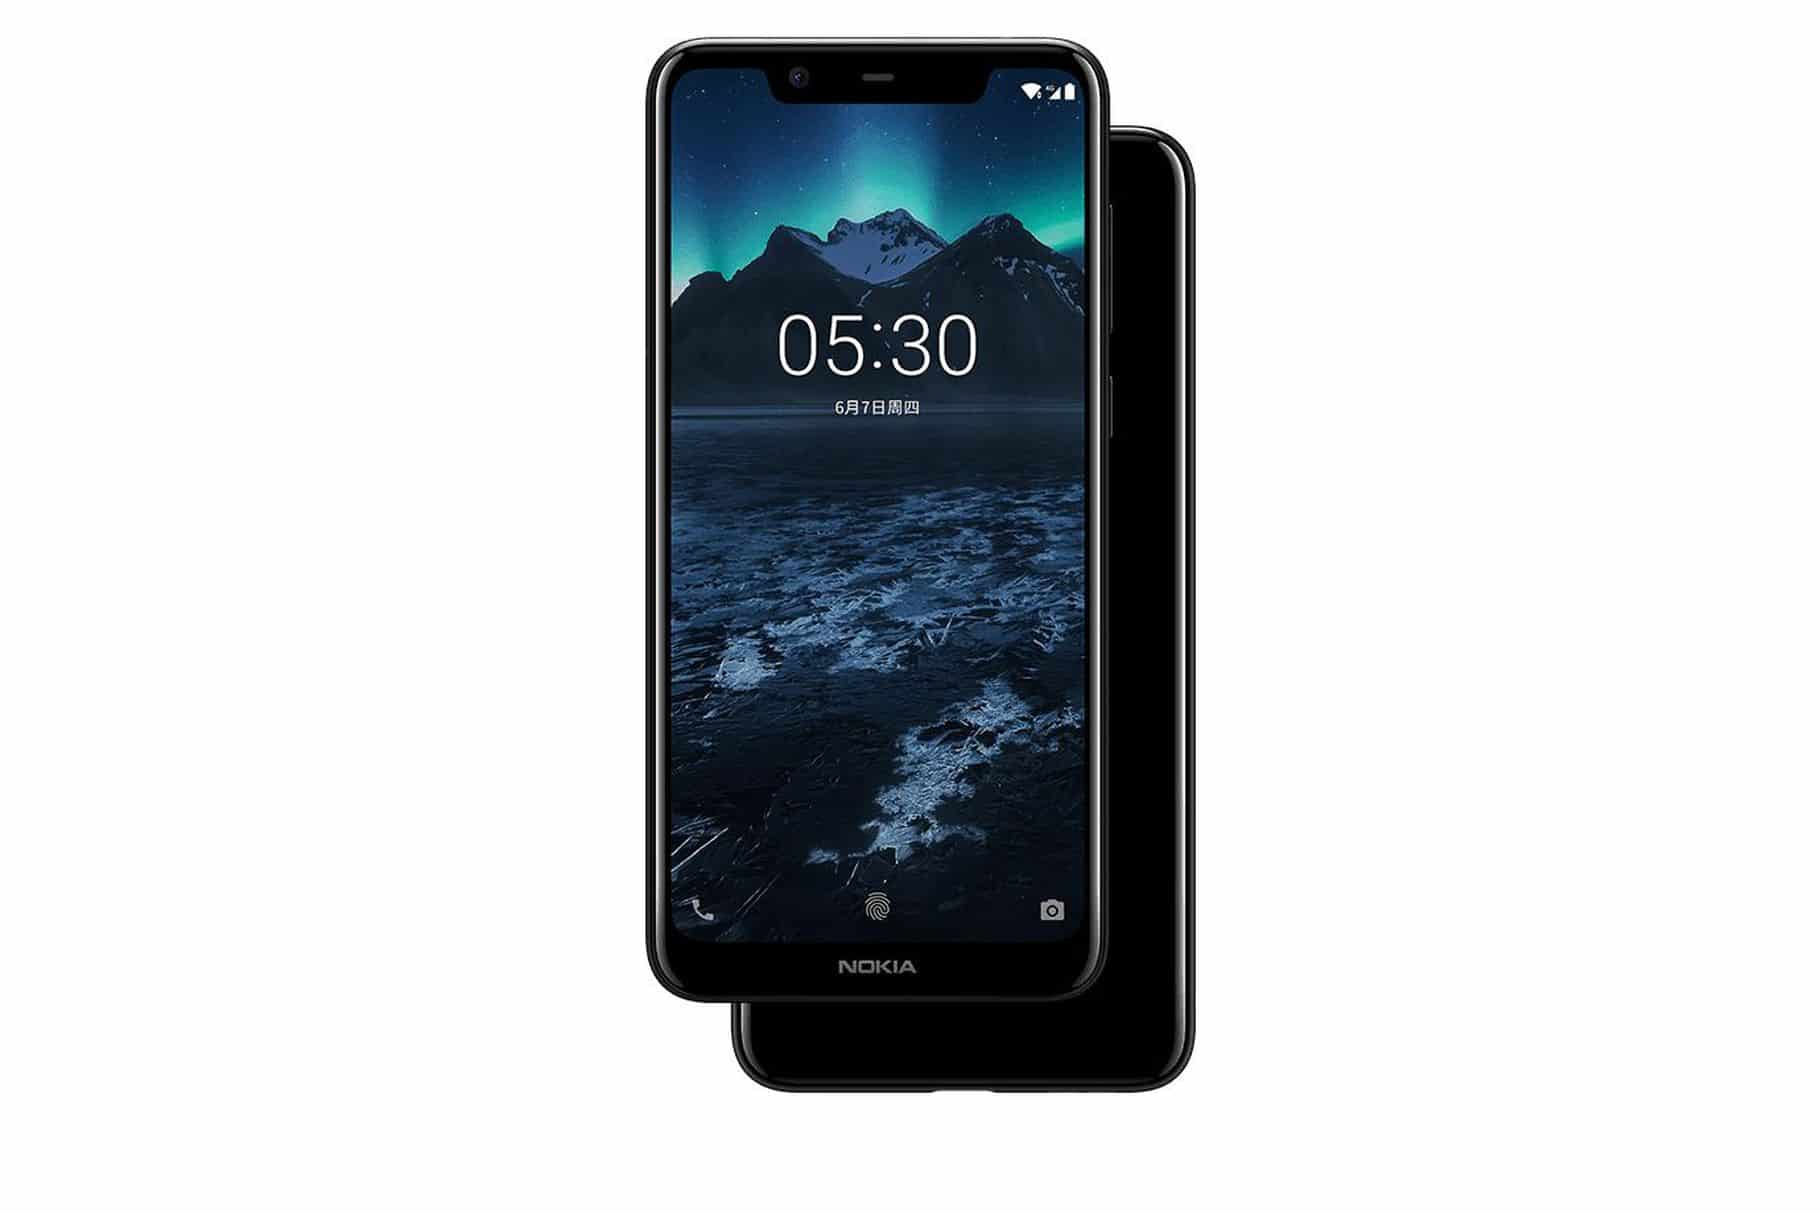 Nokia X5 iPhone X clone